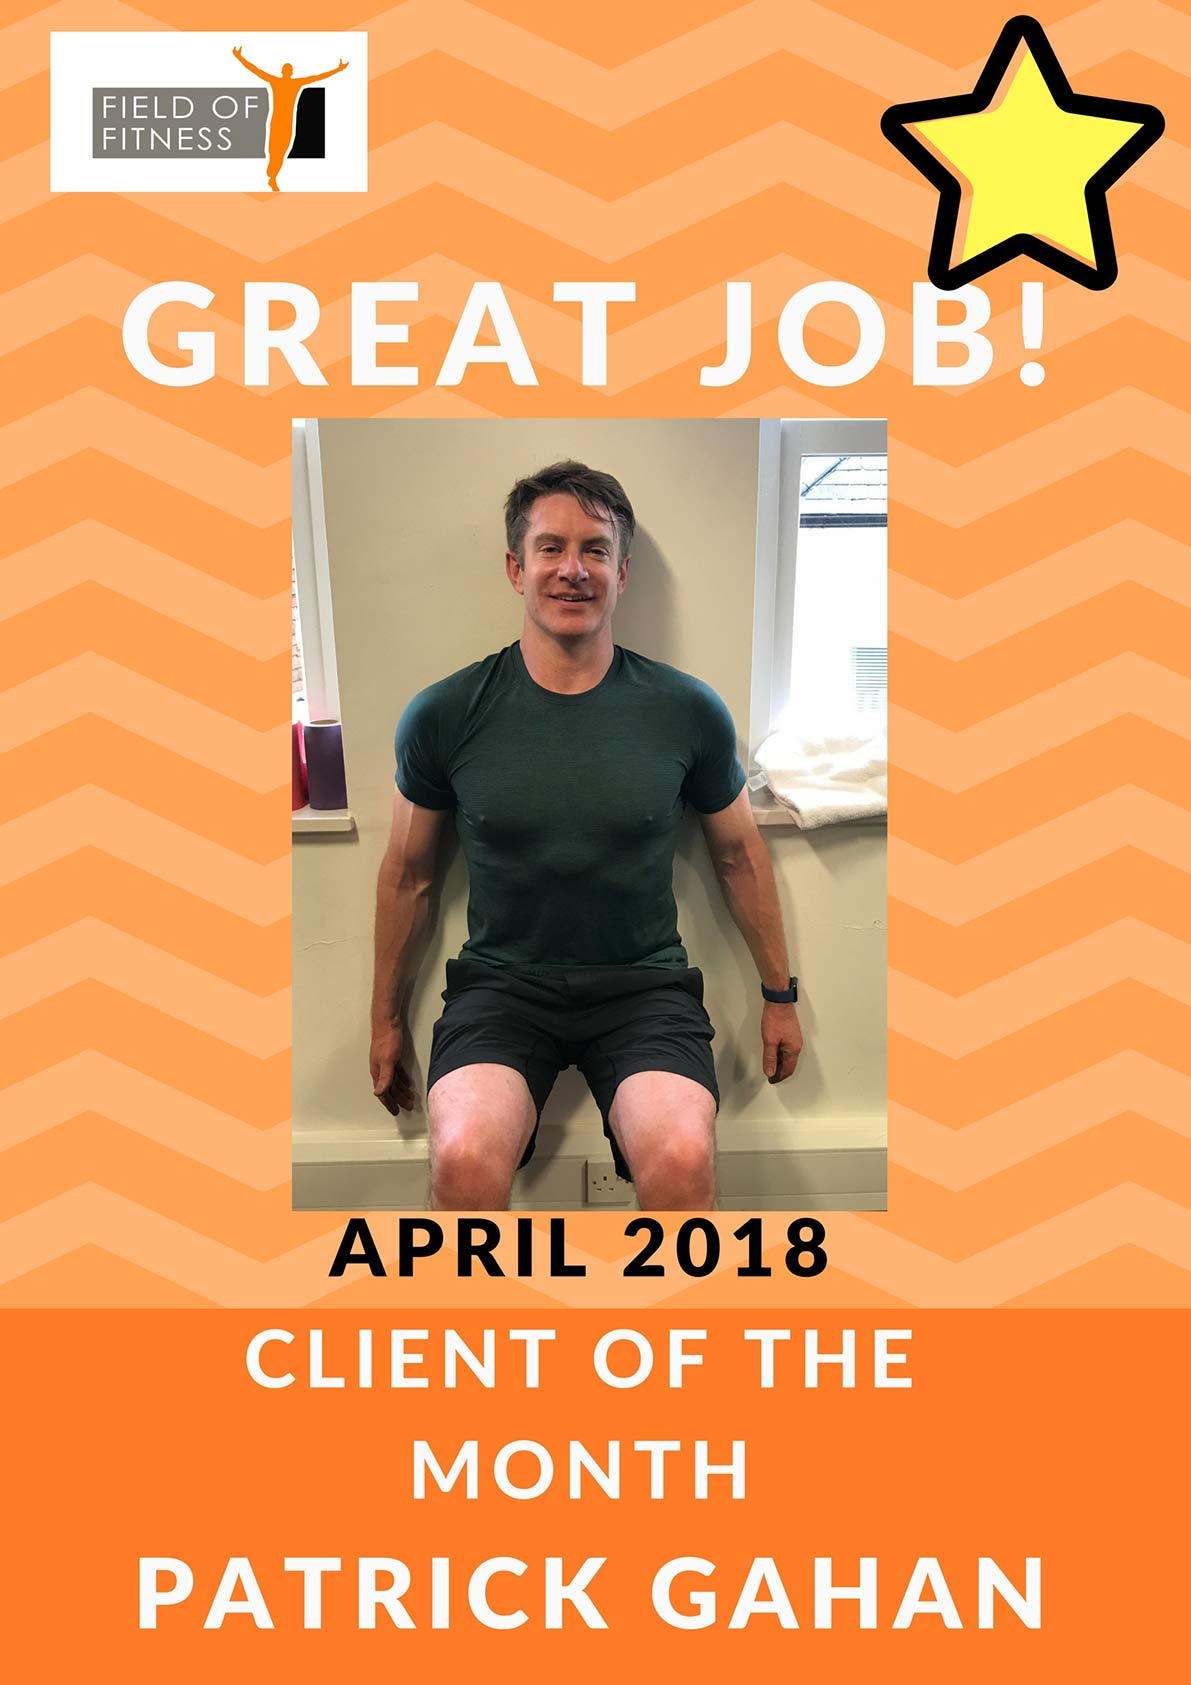 Field of Fitness - April member of the month